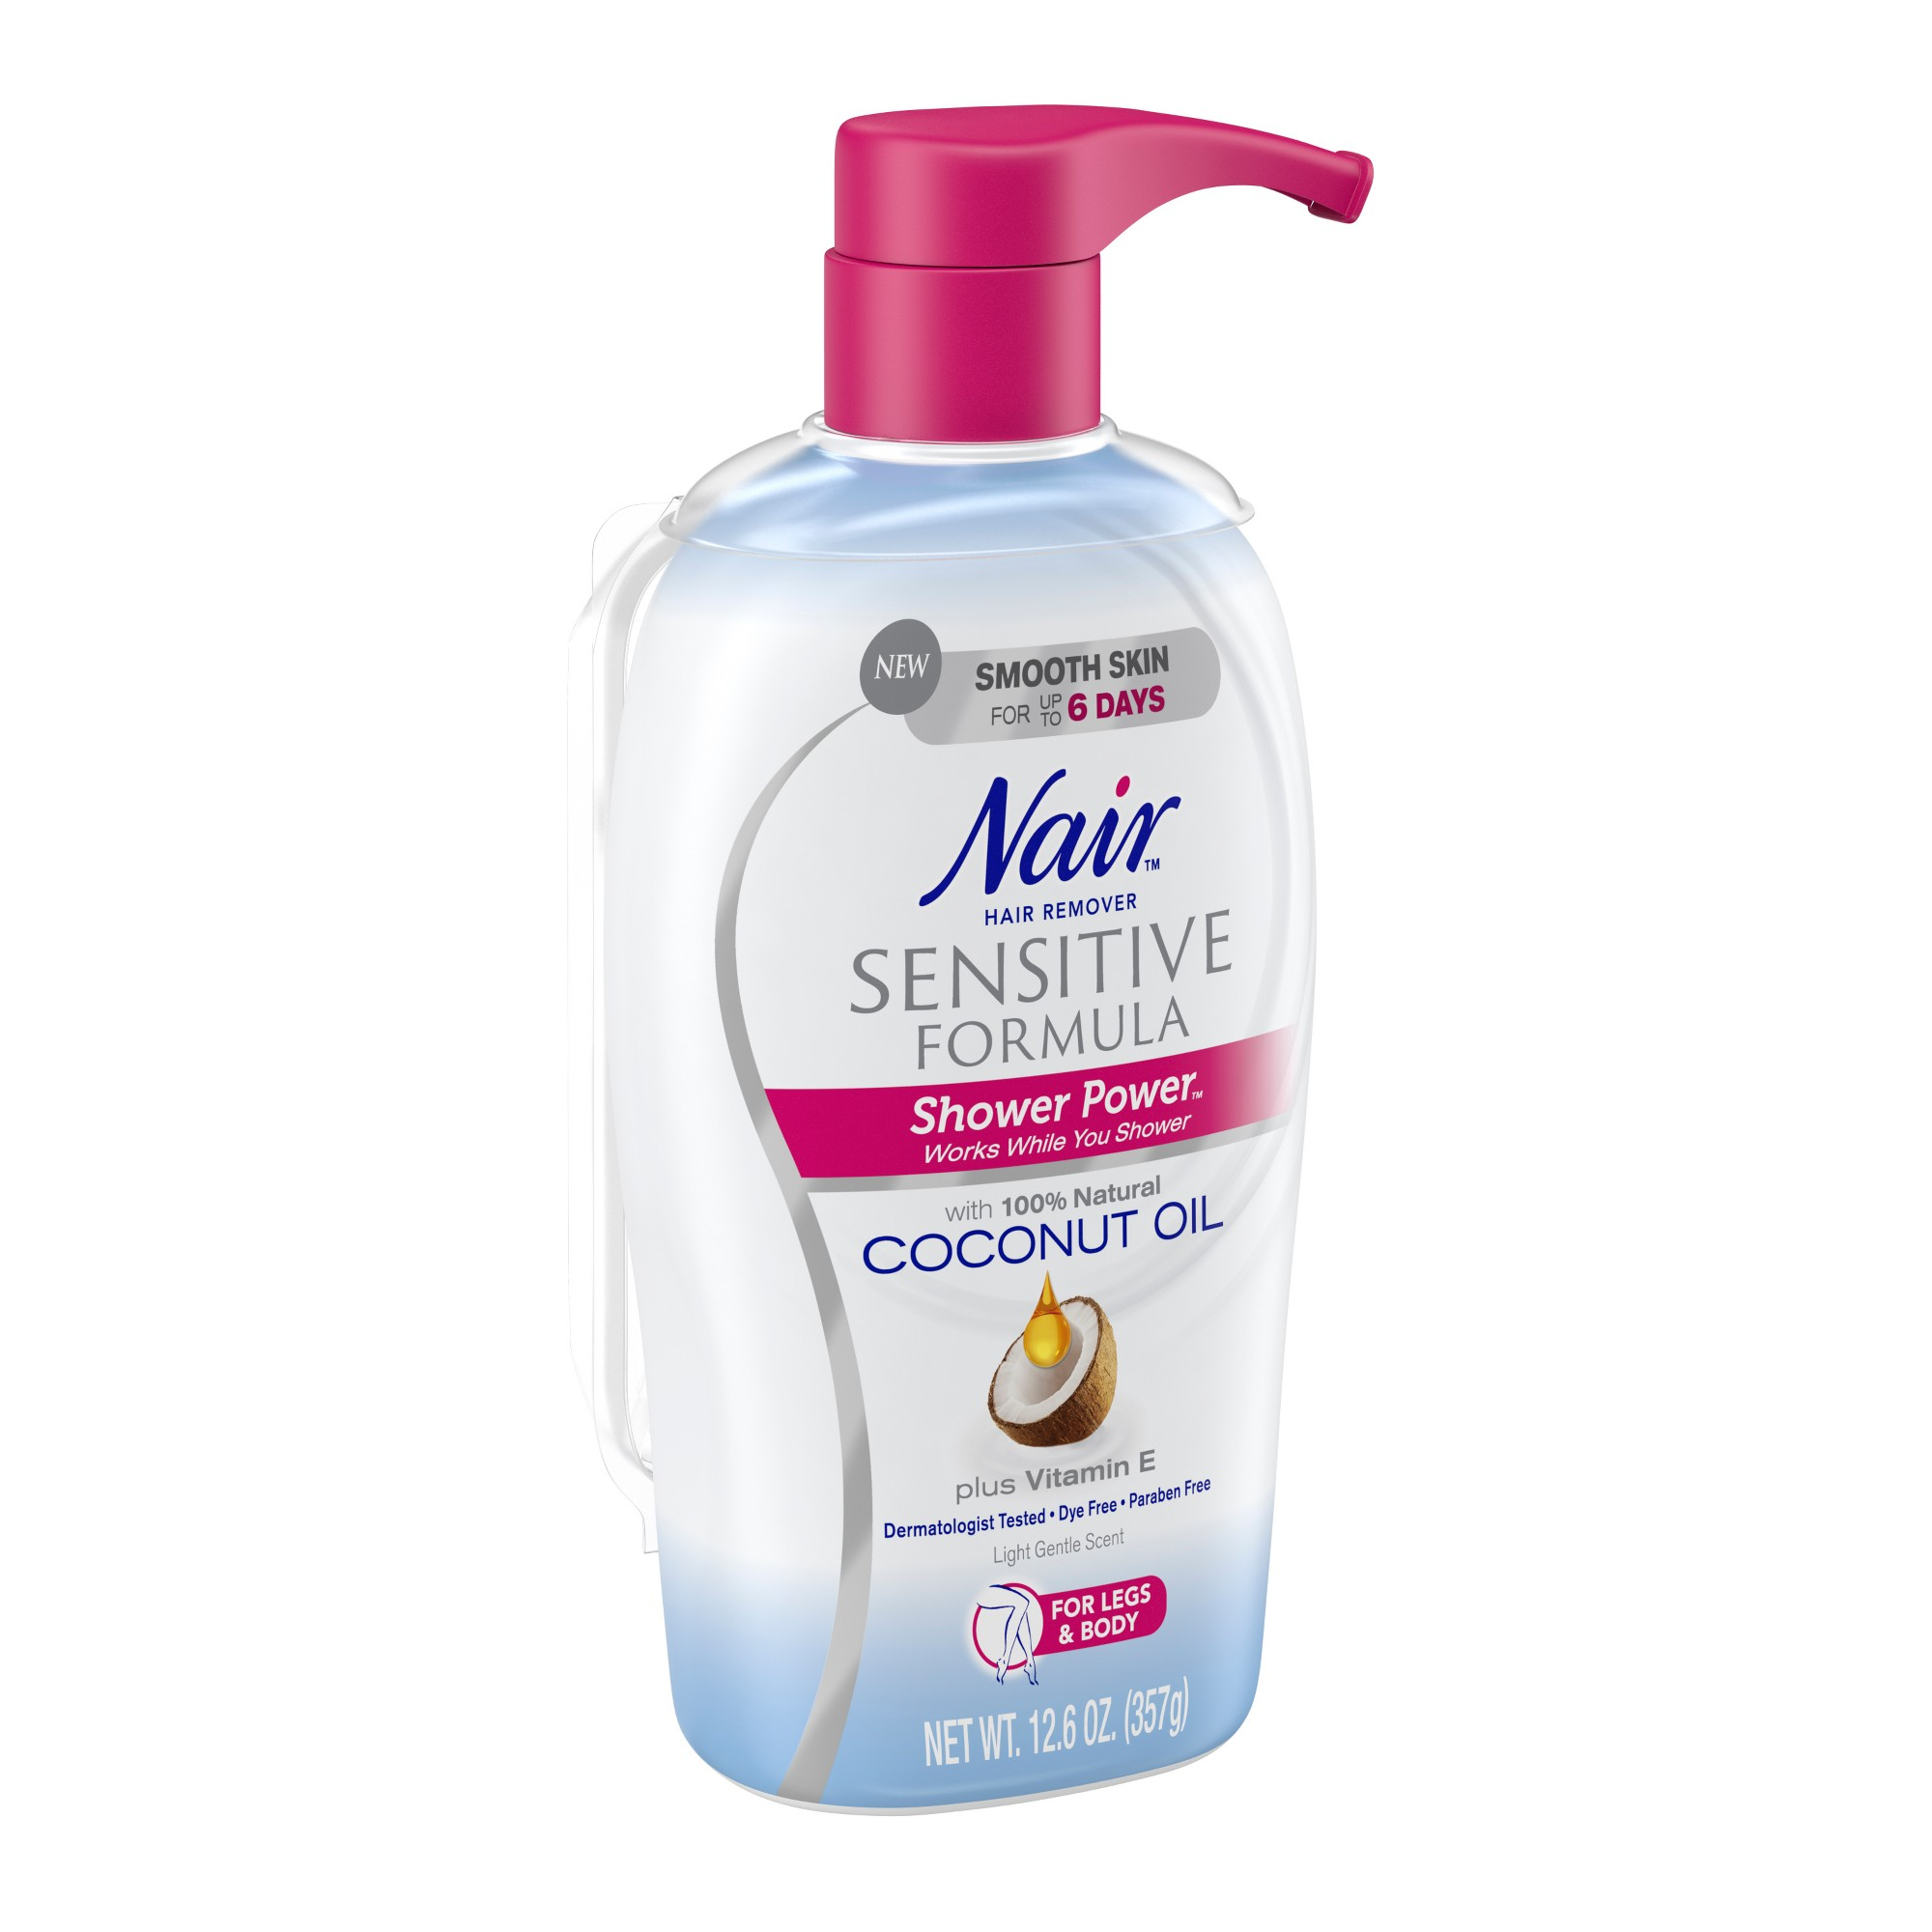 Nair Hair Remover Sensitive Formula Shower Power With Coconut Oil And Vitamin E 12 6oz Coconut Oil For Acne Coconut Oil For Skin Coconut Oil Hair